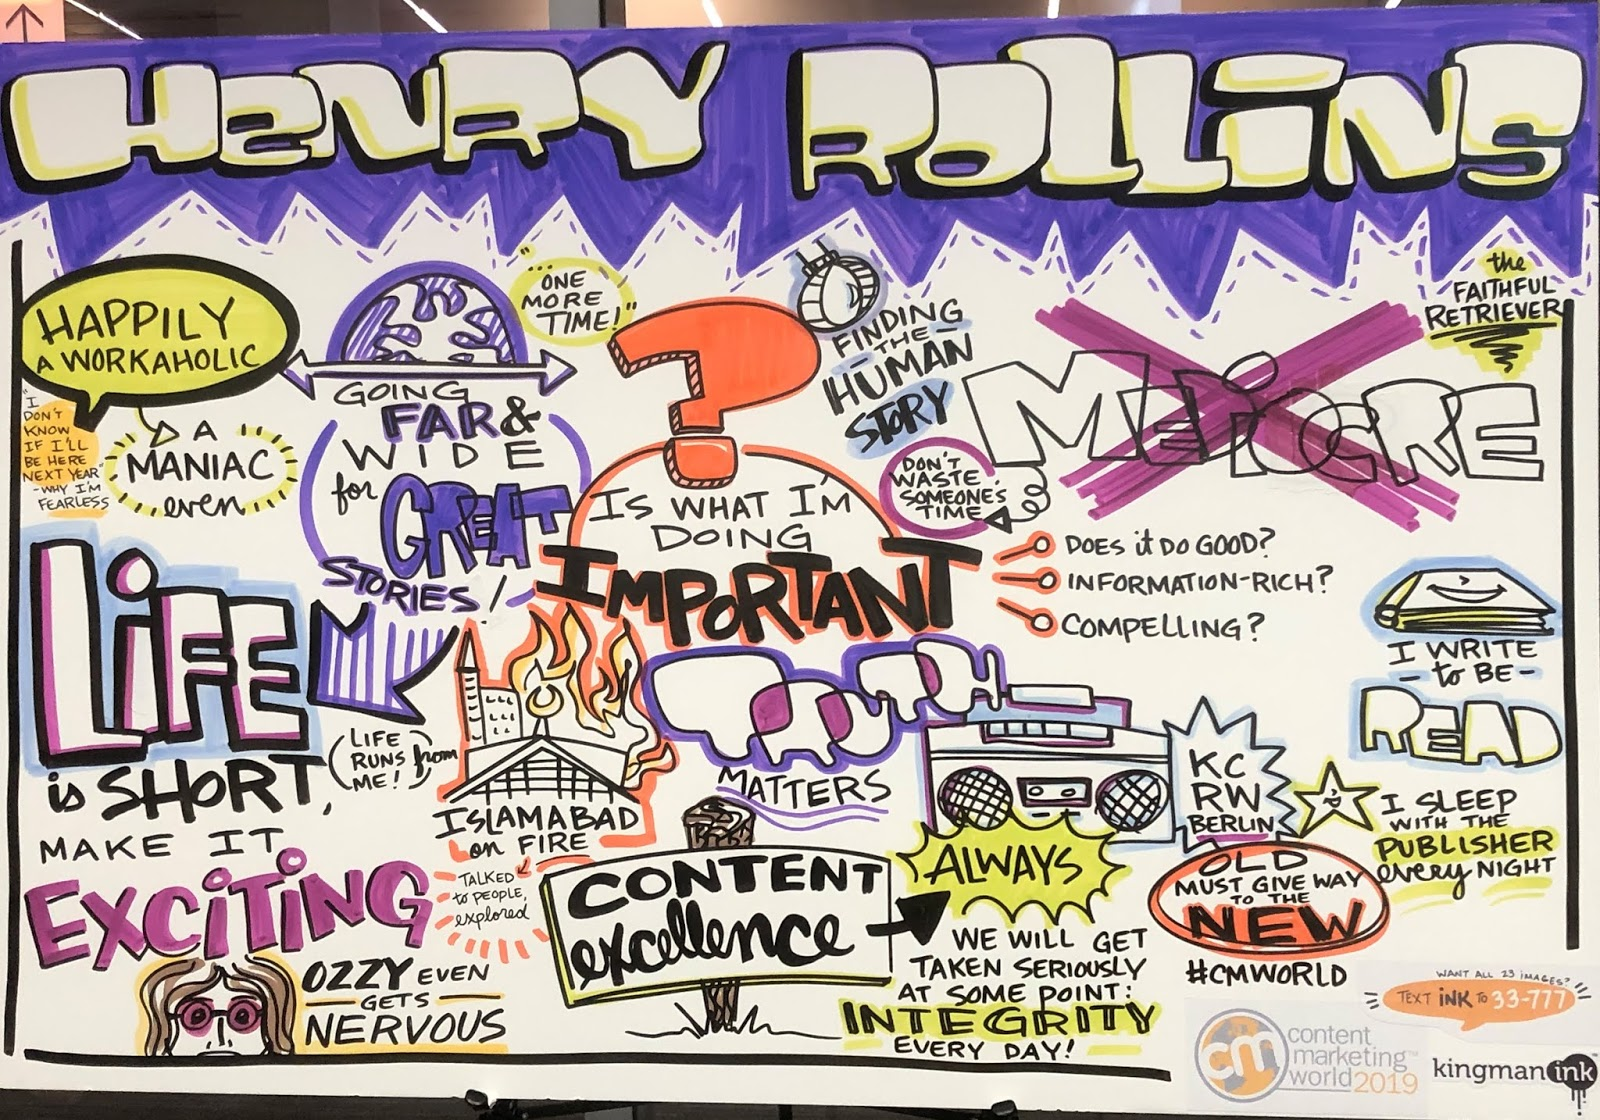 Illustration of Henry Rollins's Presentation at Content Marketing World 2019